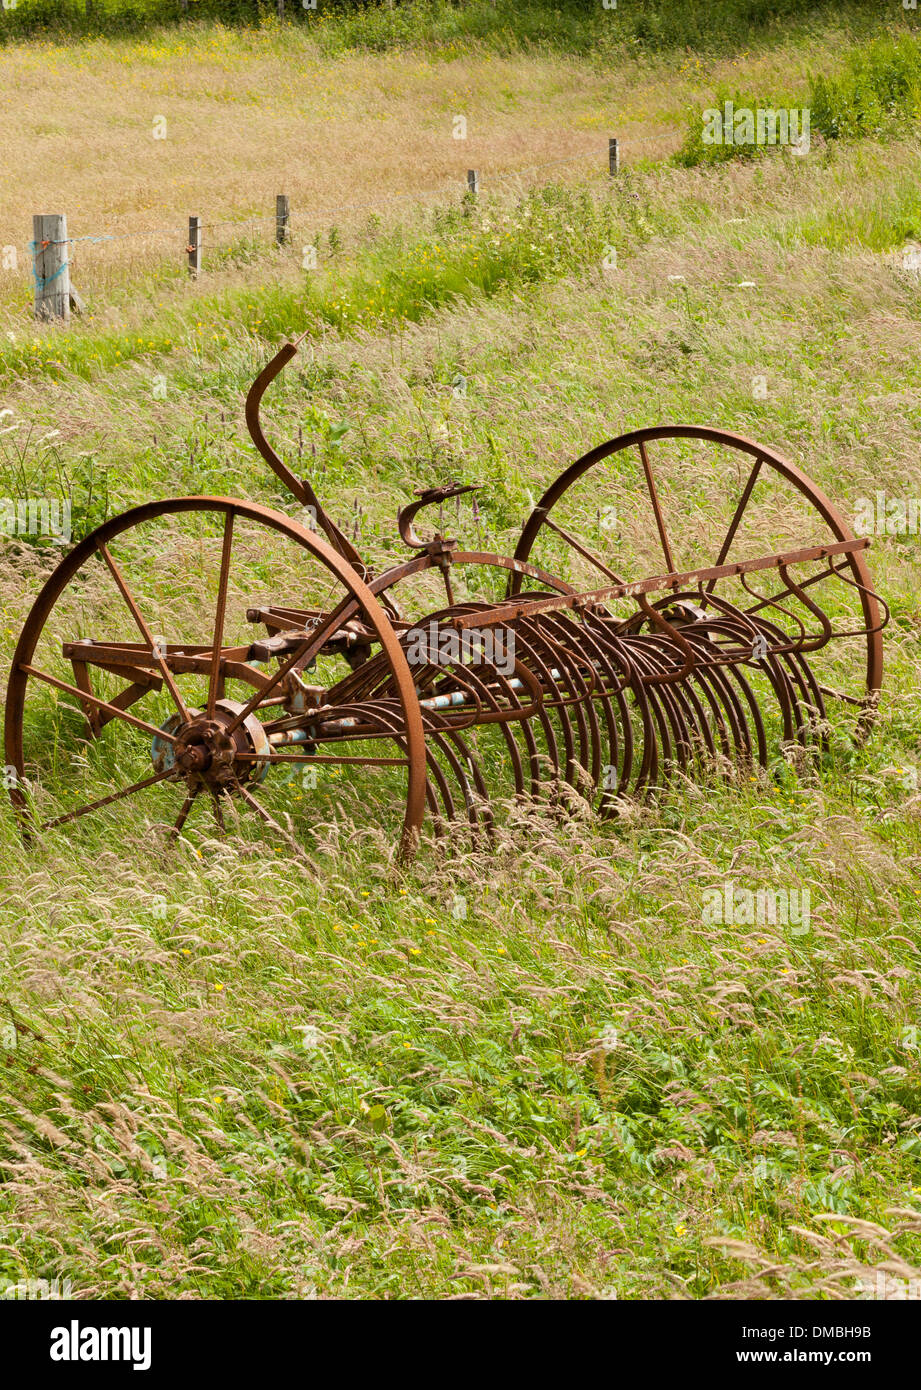 An abandoned rusting vintage agricultural hay rake - Stock Image